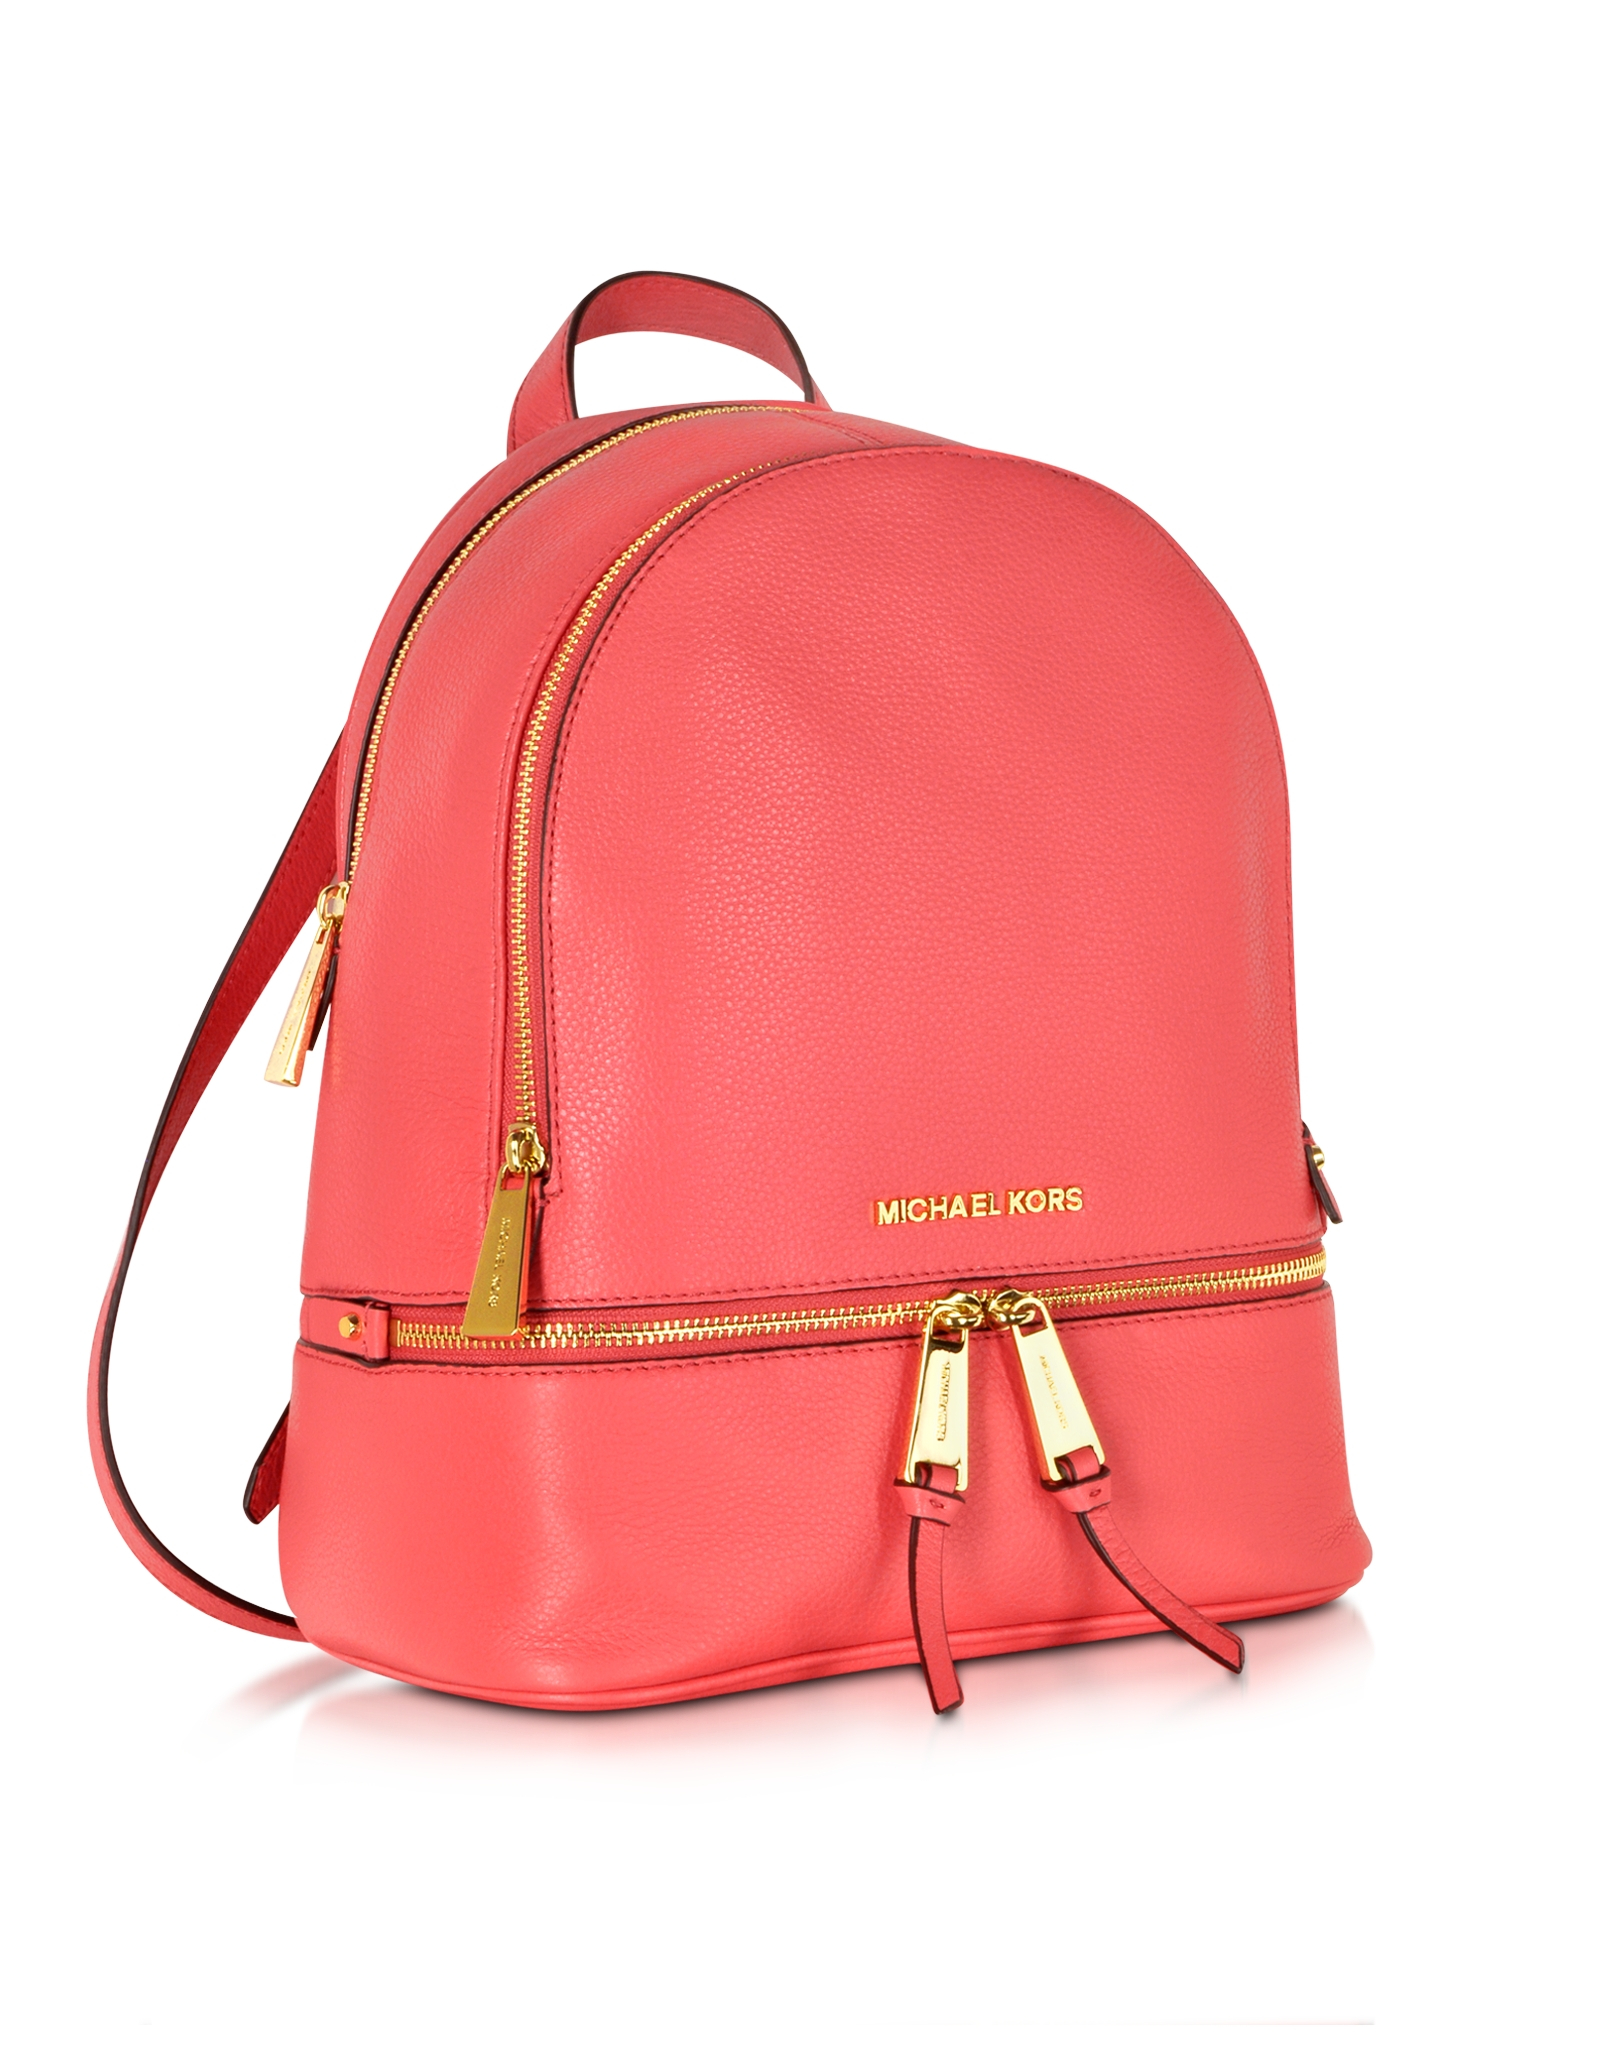 d9269d3c27 Michael Kors Rhea Zip Small Watermelon Leather Backpack in Red - Lyst